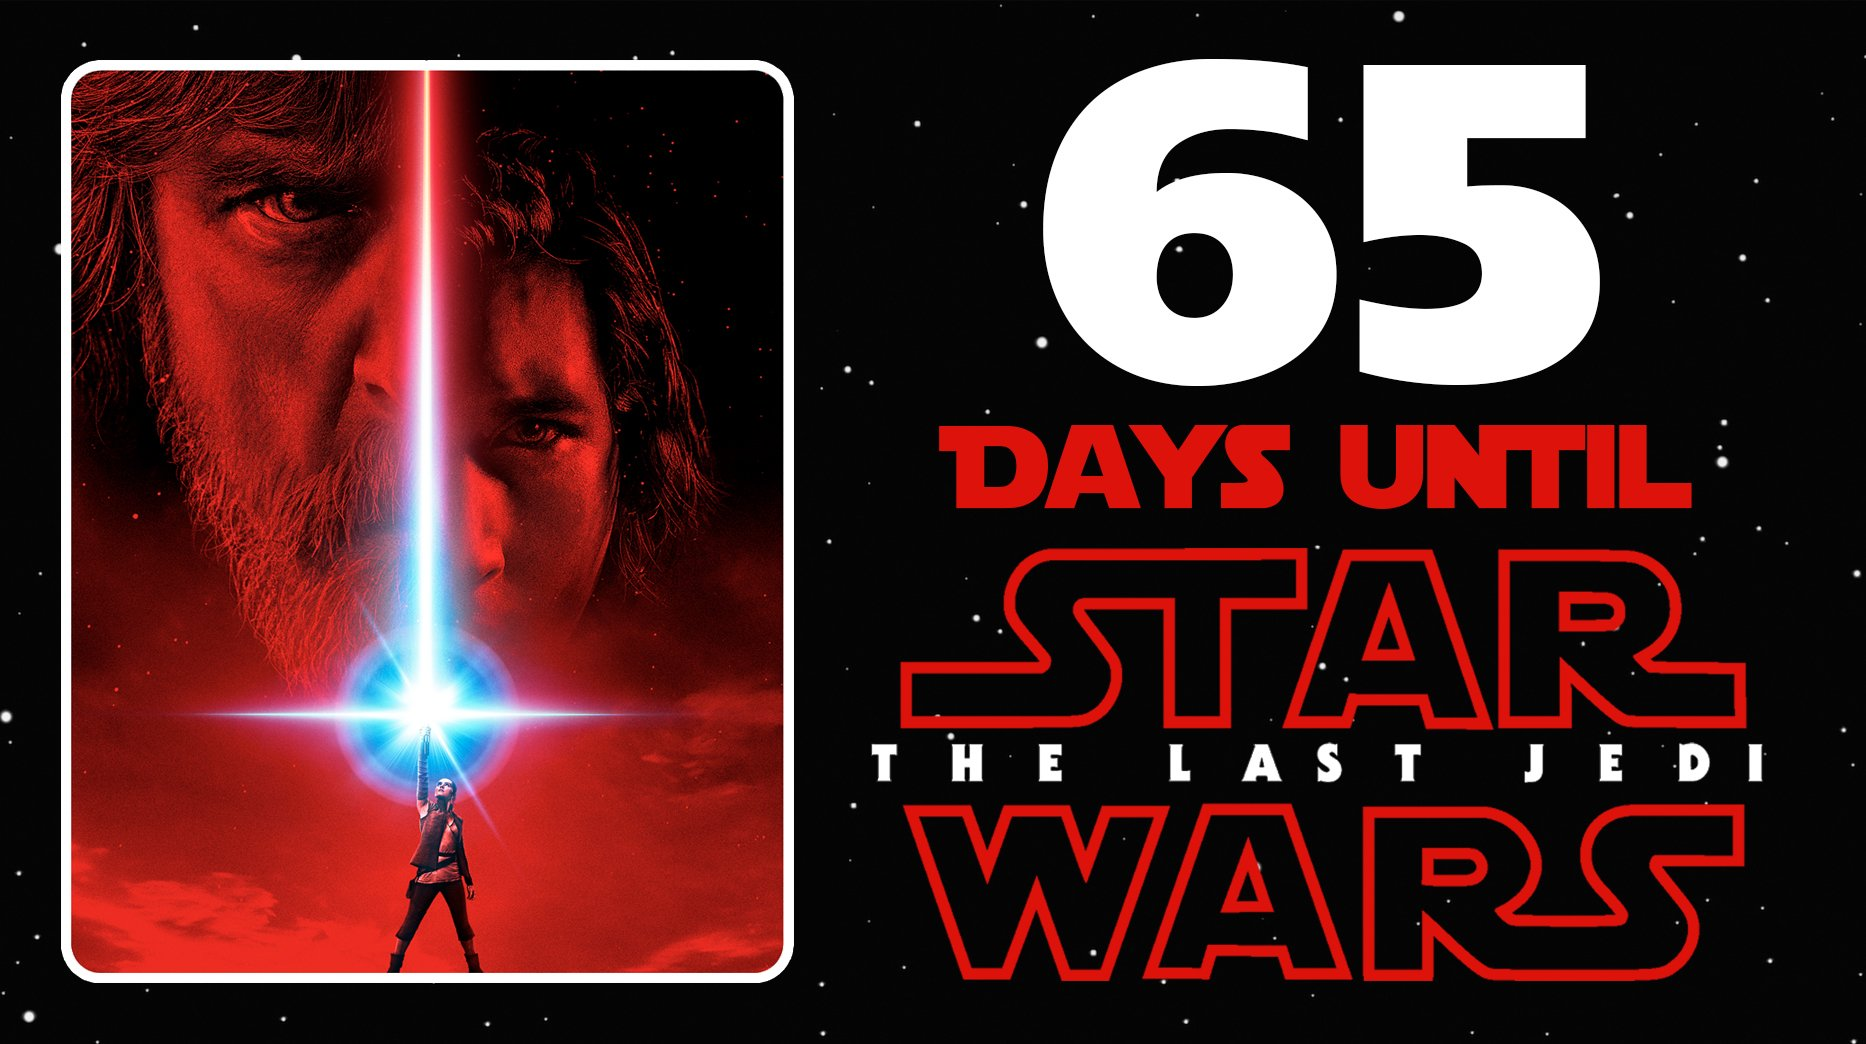 Only 65 days until @StarWars: #TheLastJedi! https://t.co/NuomMThoe9